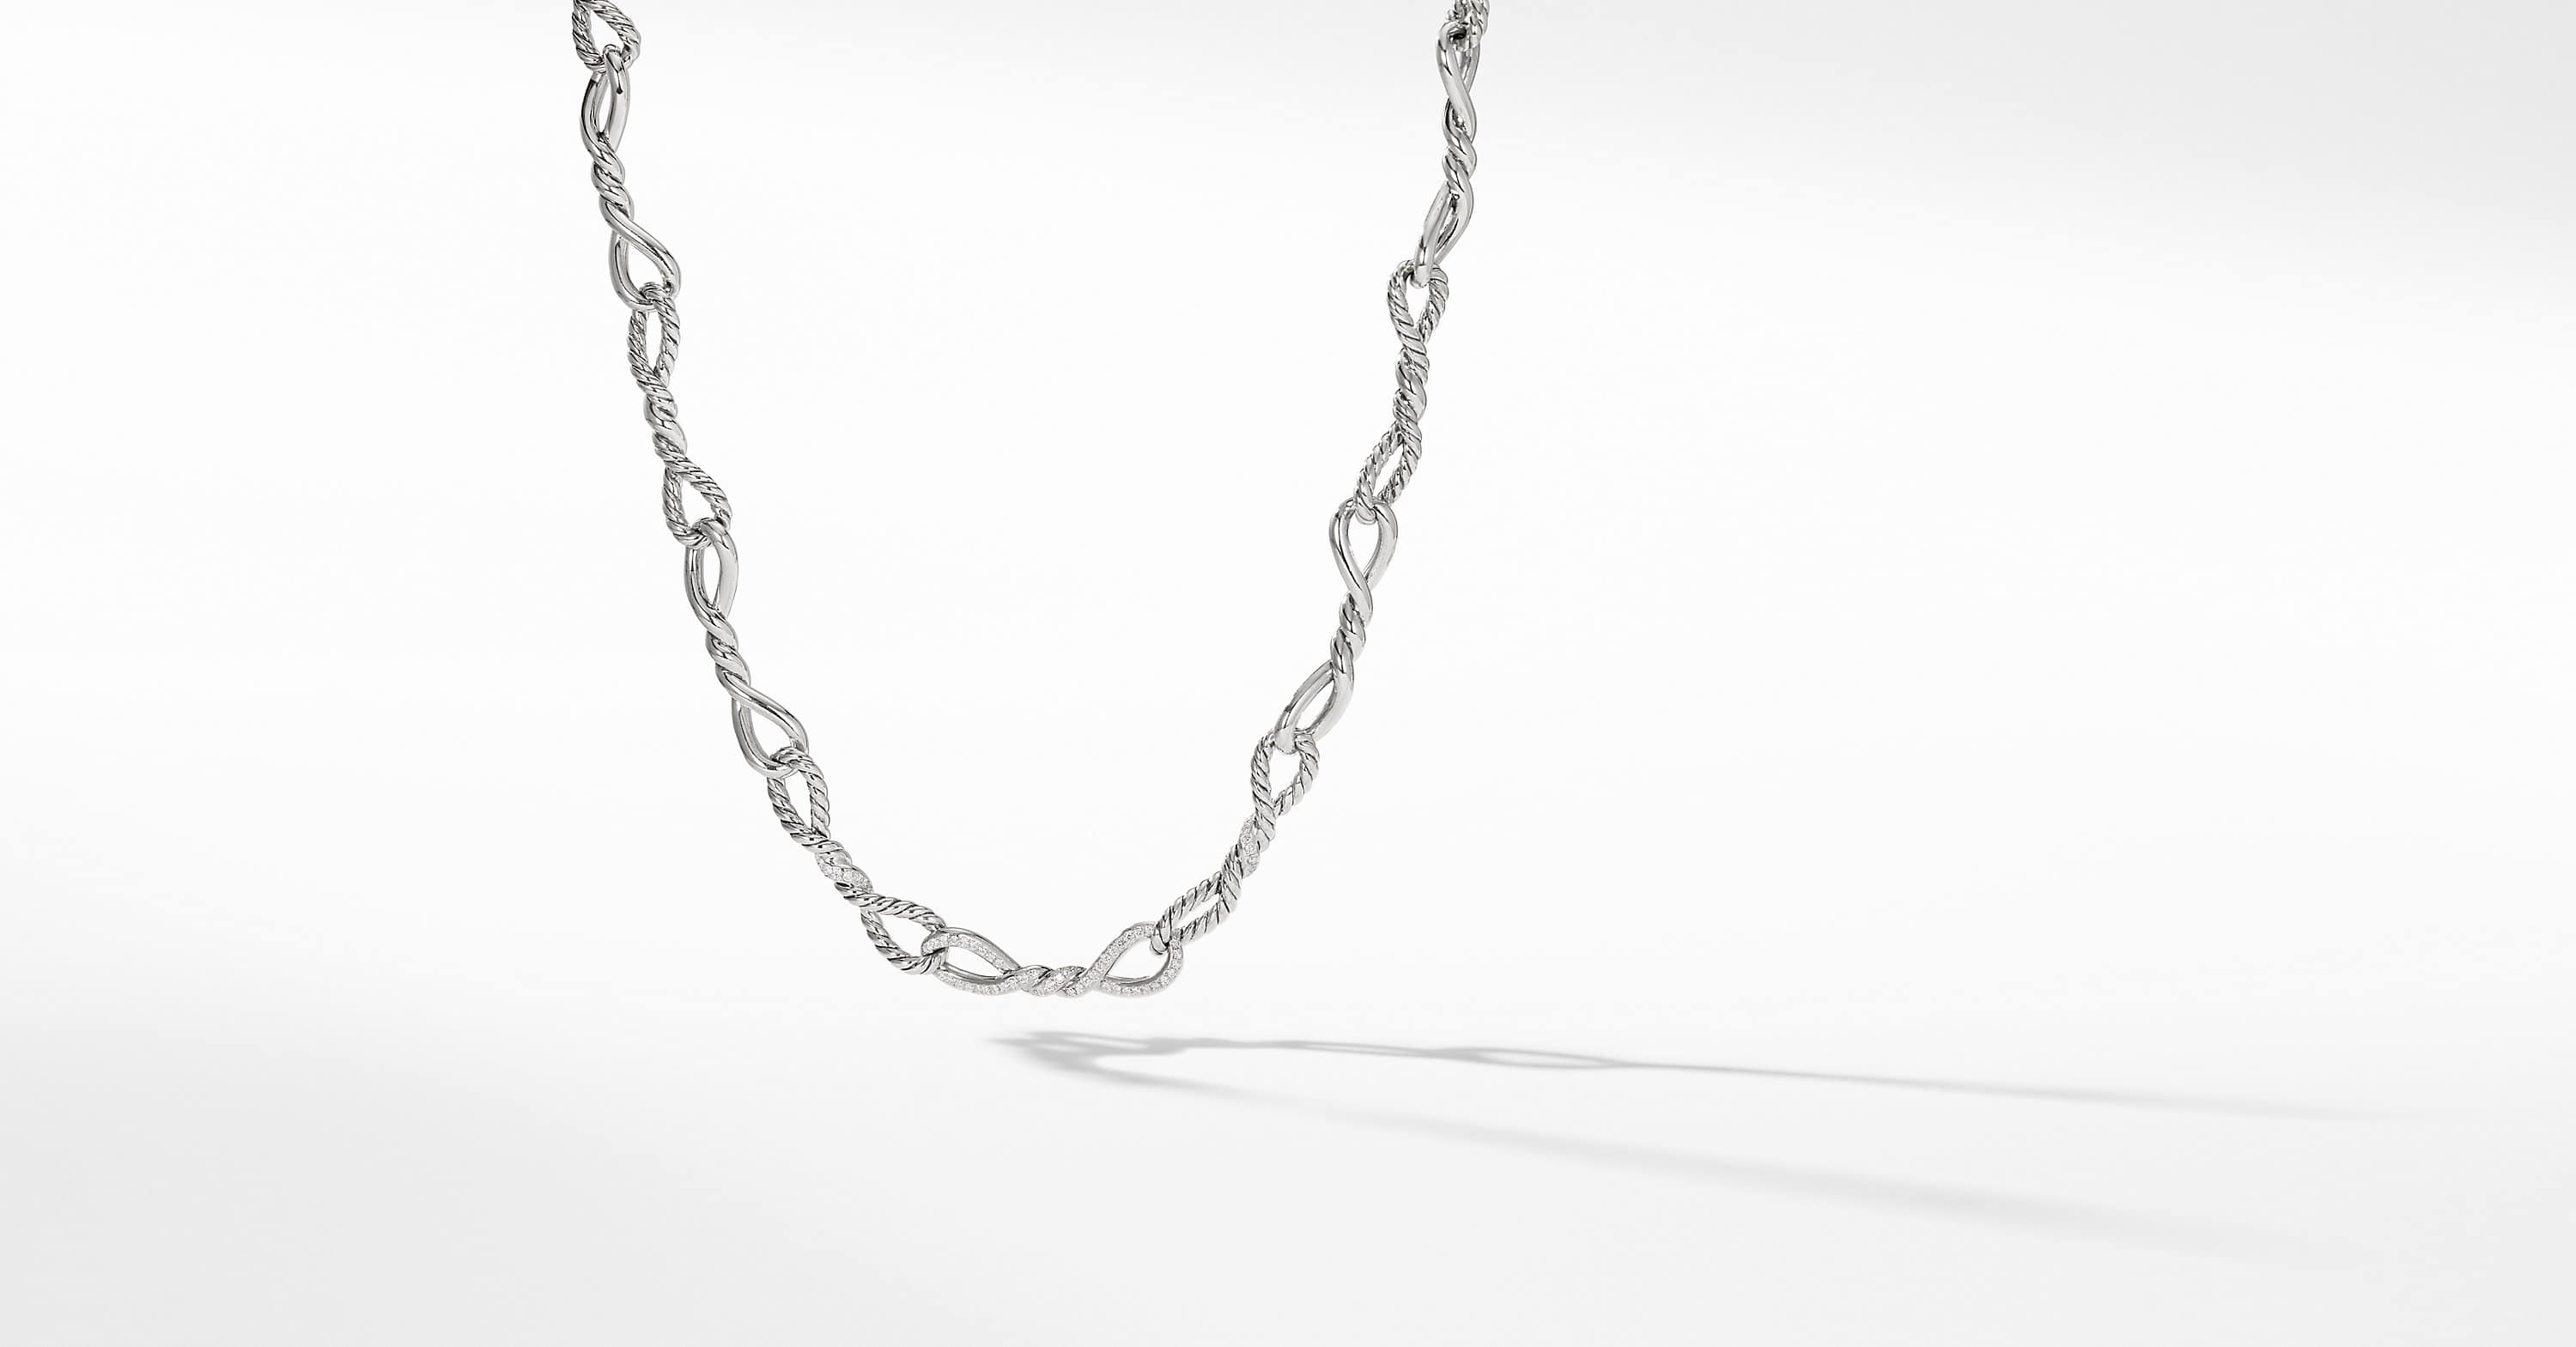 Continuance Short Linked Necklace with Diamonds